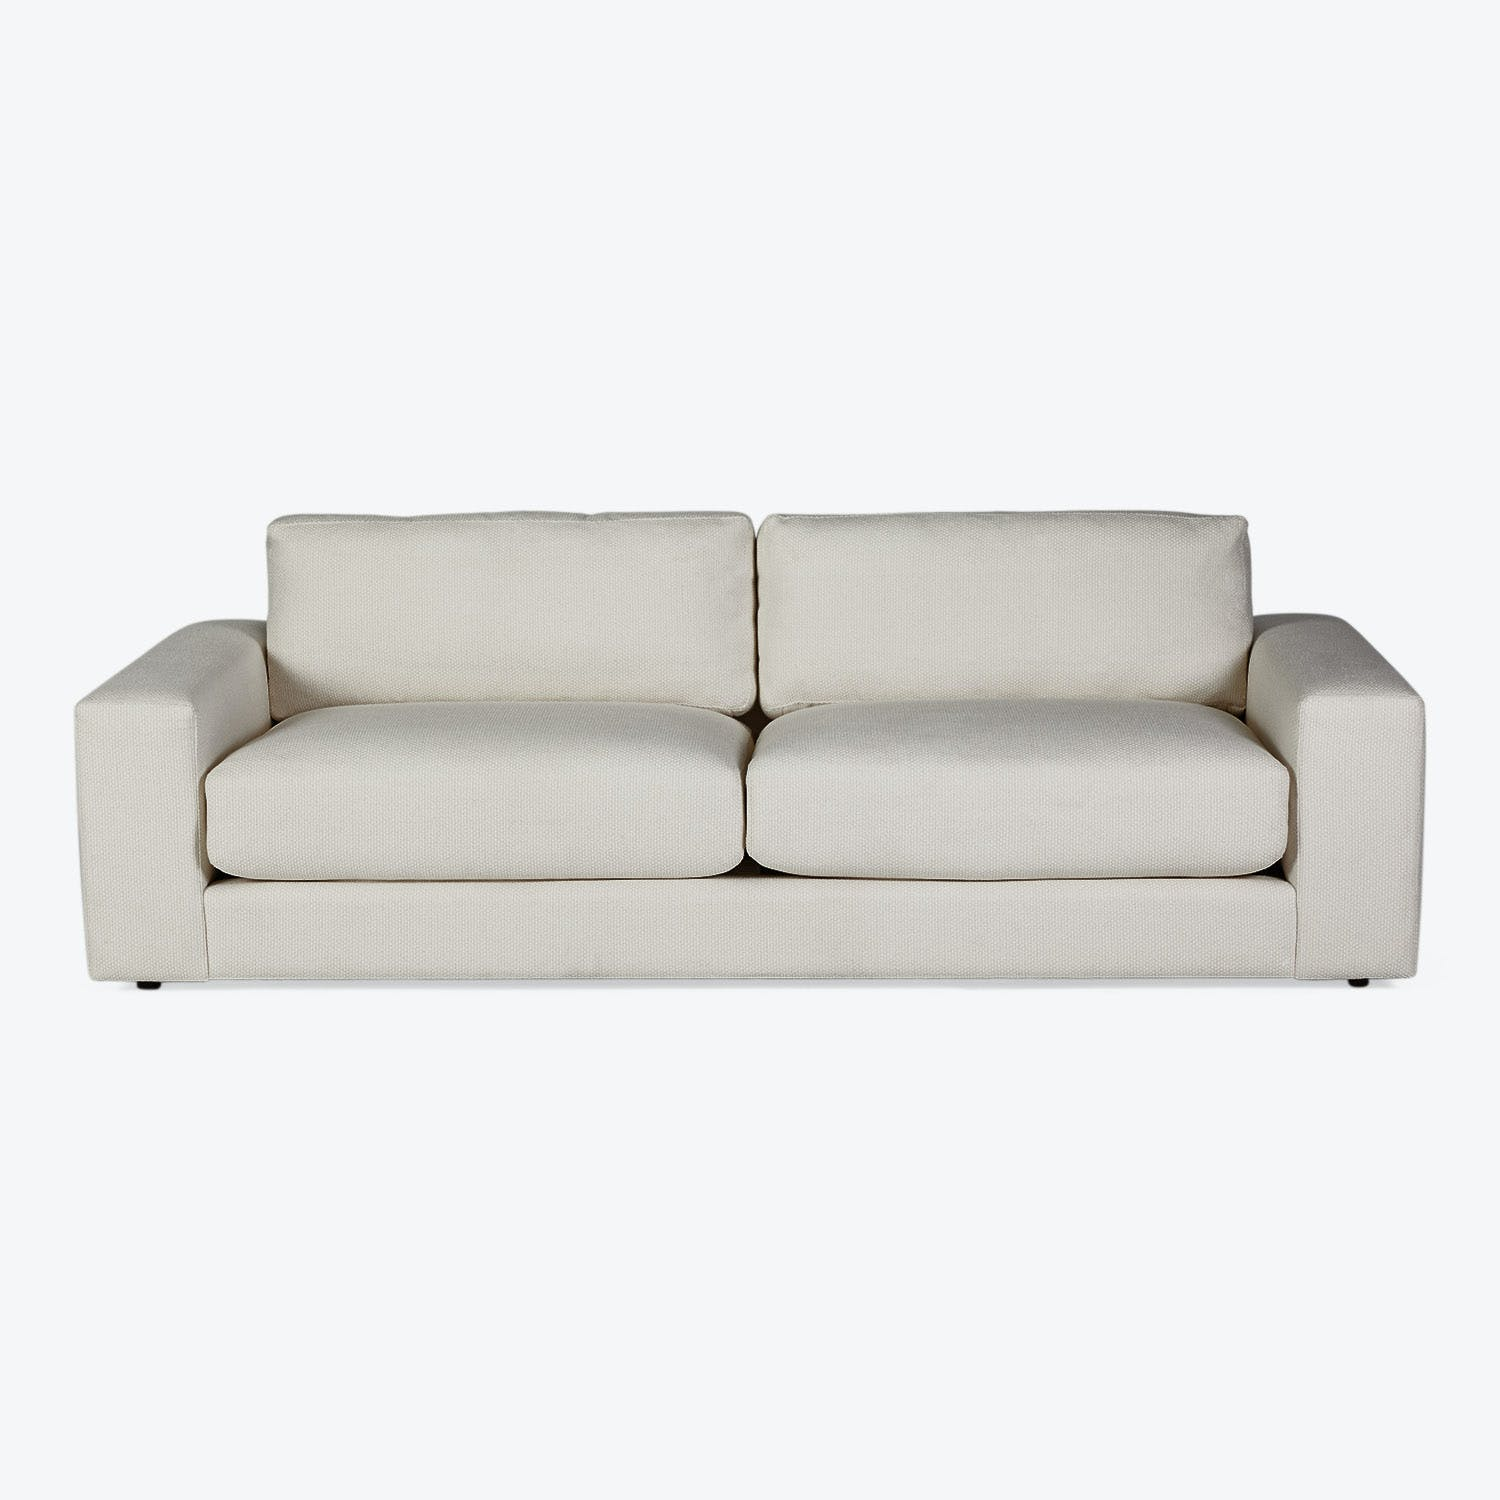 Product Image - Central Sofa